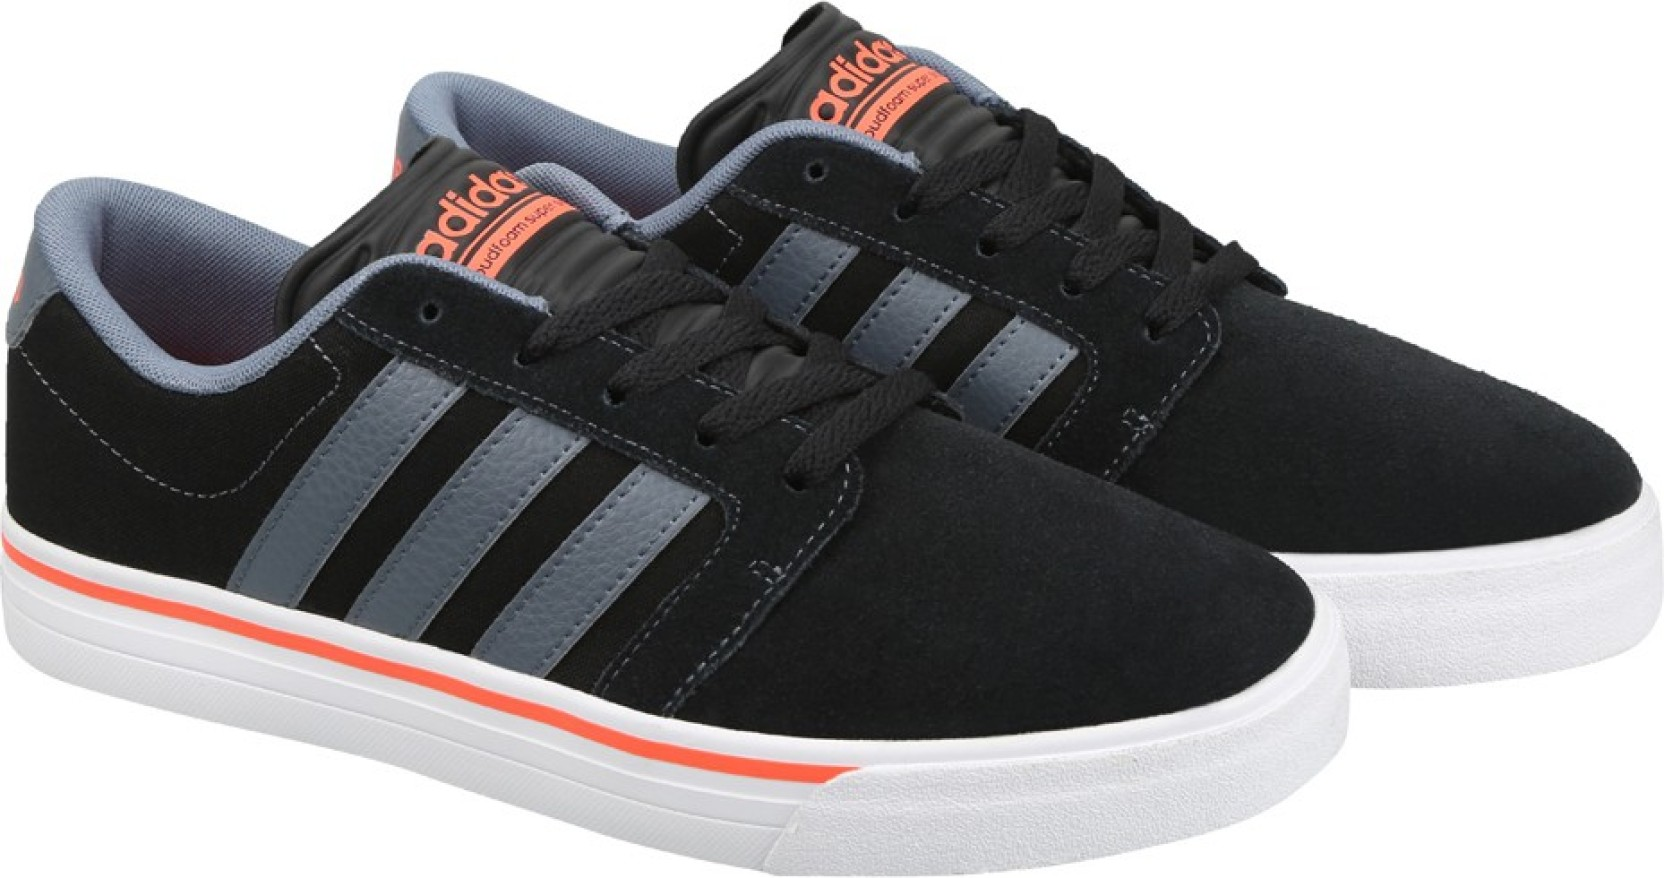 quality design 1250b e5506 Adidas Neo Shoes Black And Orange ADIDAS NEO CLOUDFOAM SUPER SKATE Sneakers  For Men.